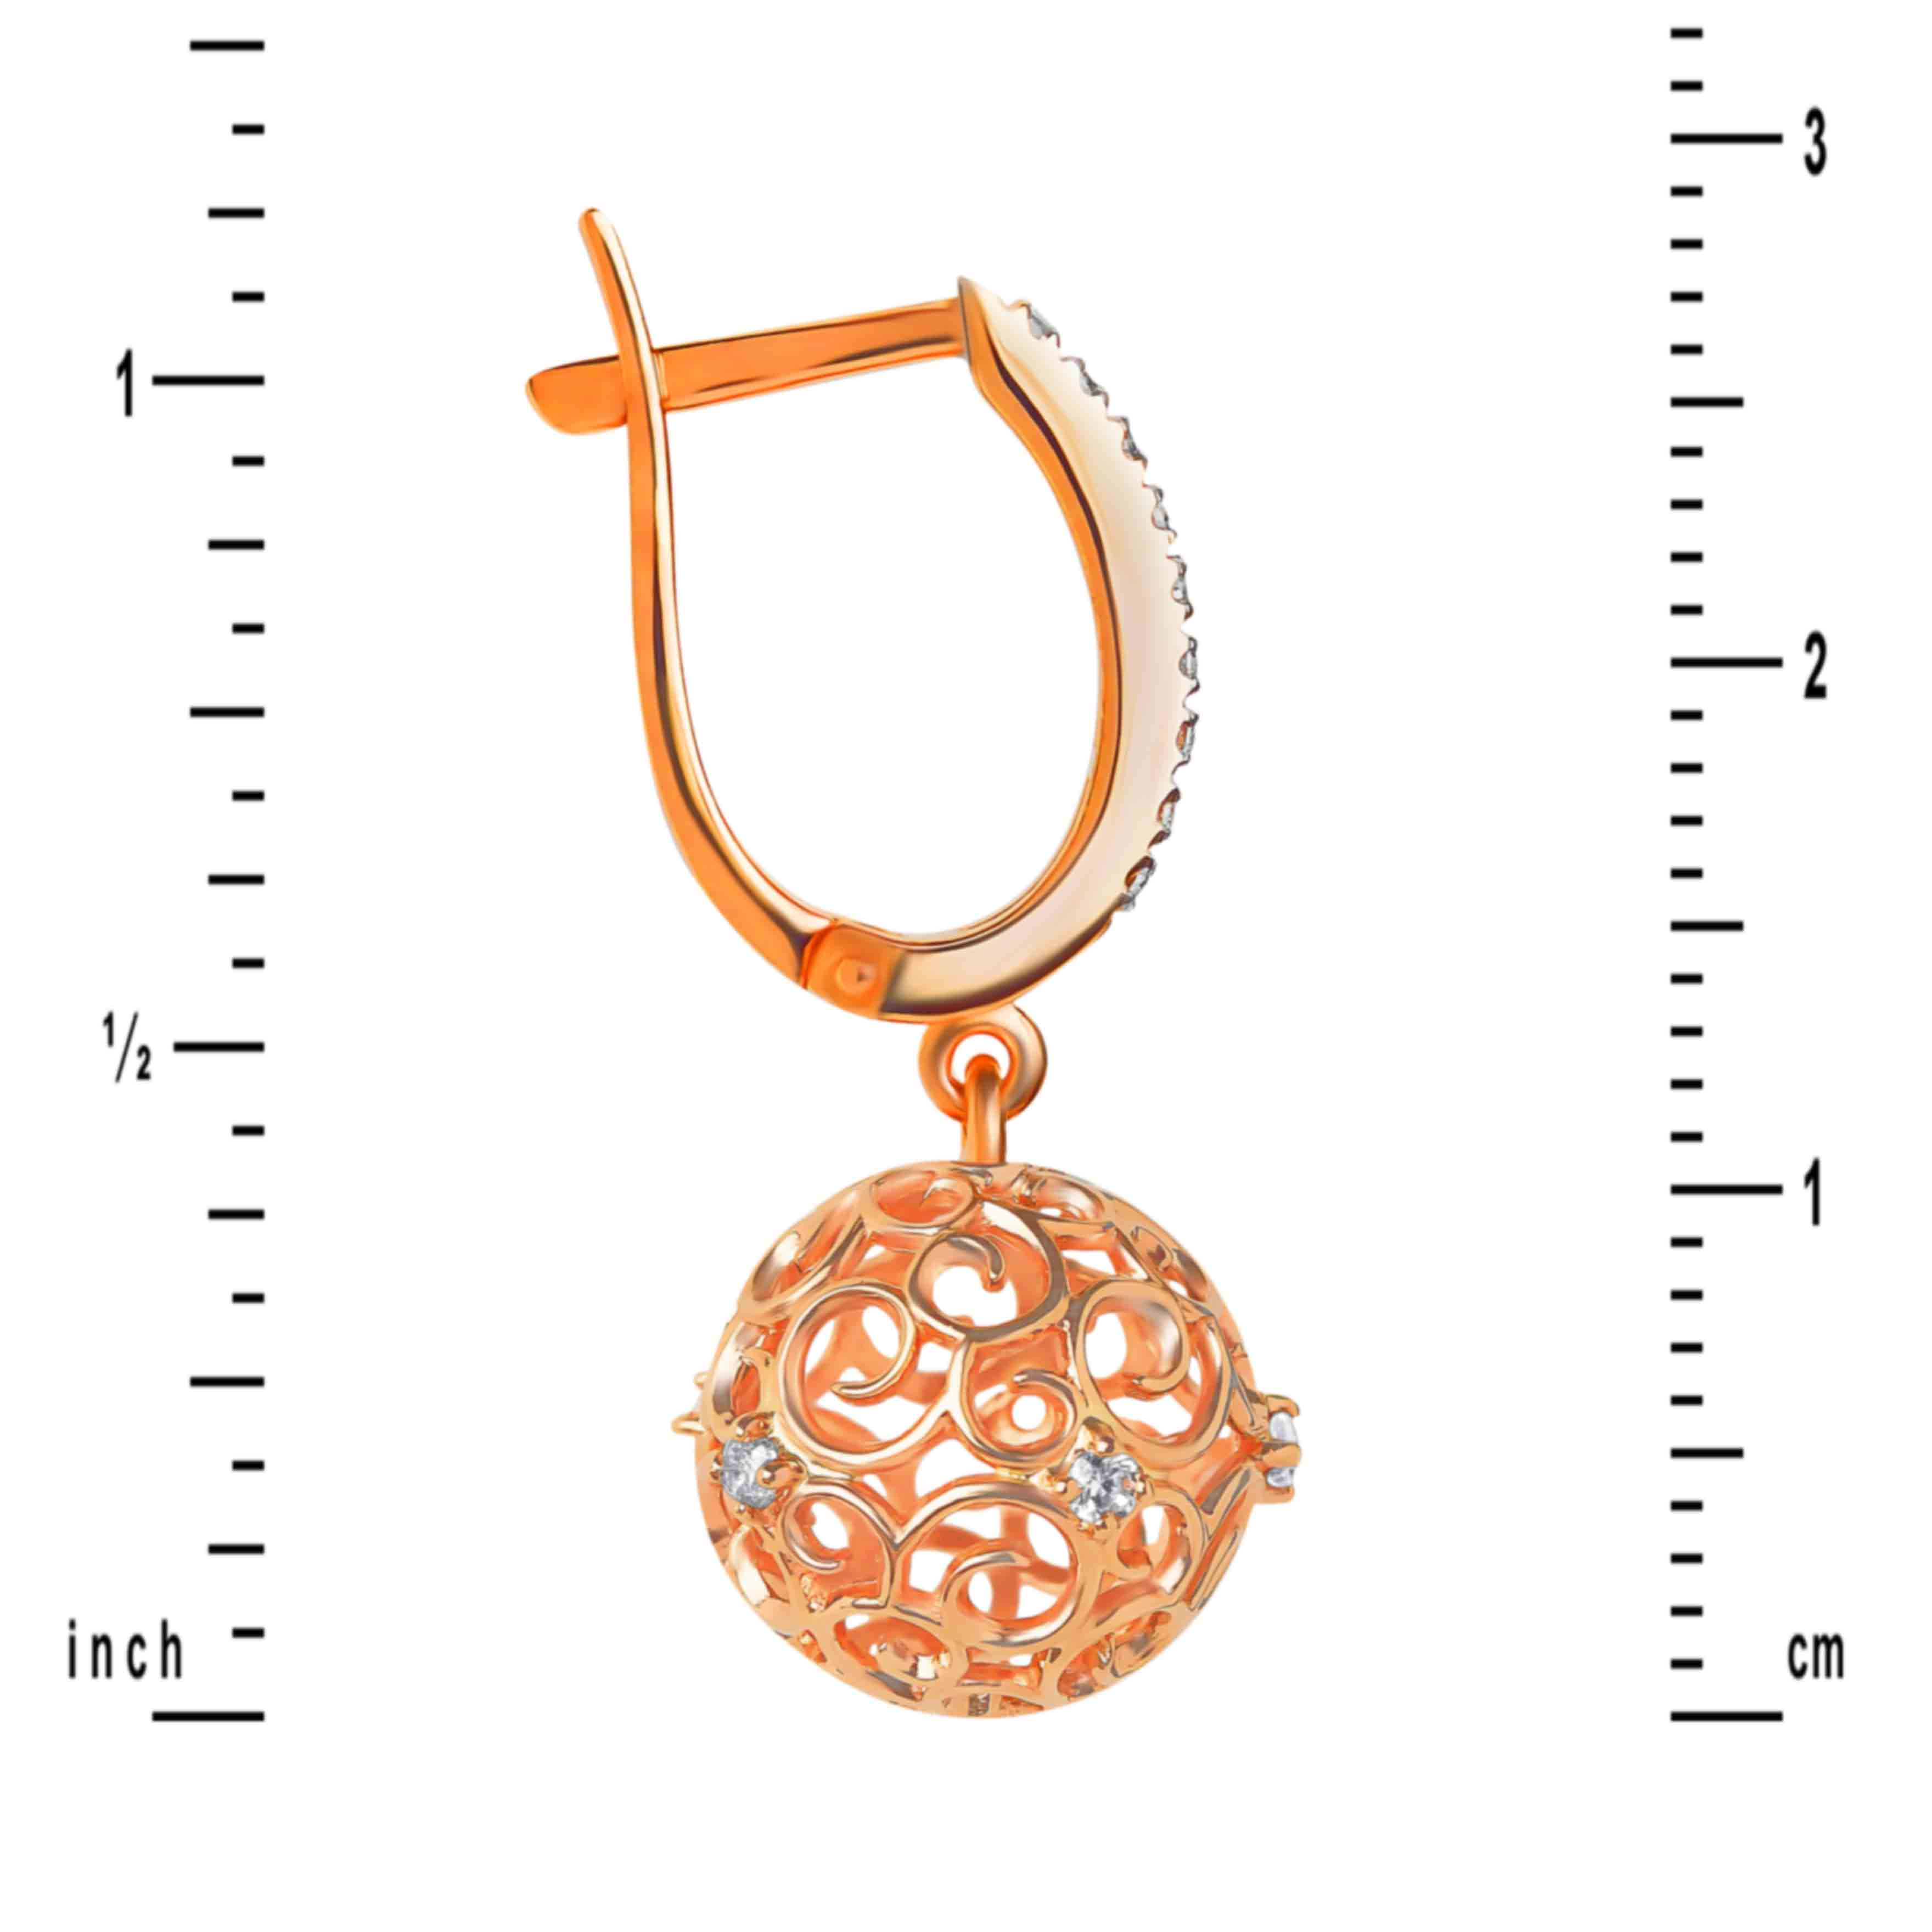 Sphere-shaped Openwork Earring - Scale